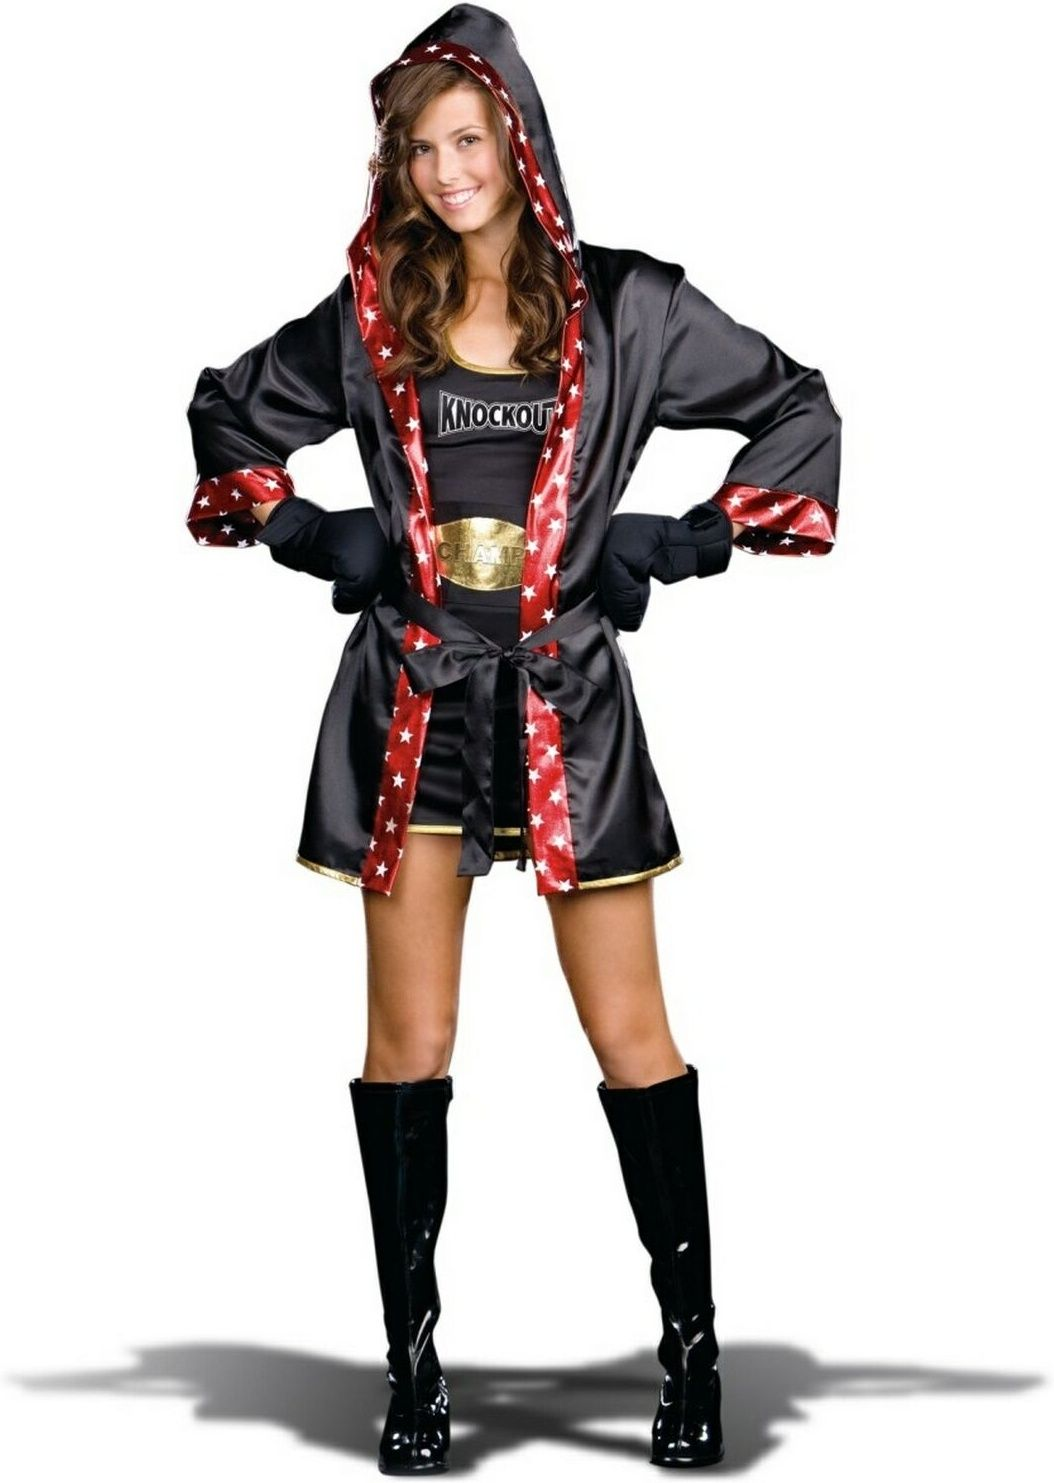 cute halloween costumes for teens tko costume teen costume teenager halloween. Black Bedroom Furniture Sets. Home Design Ideas